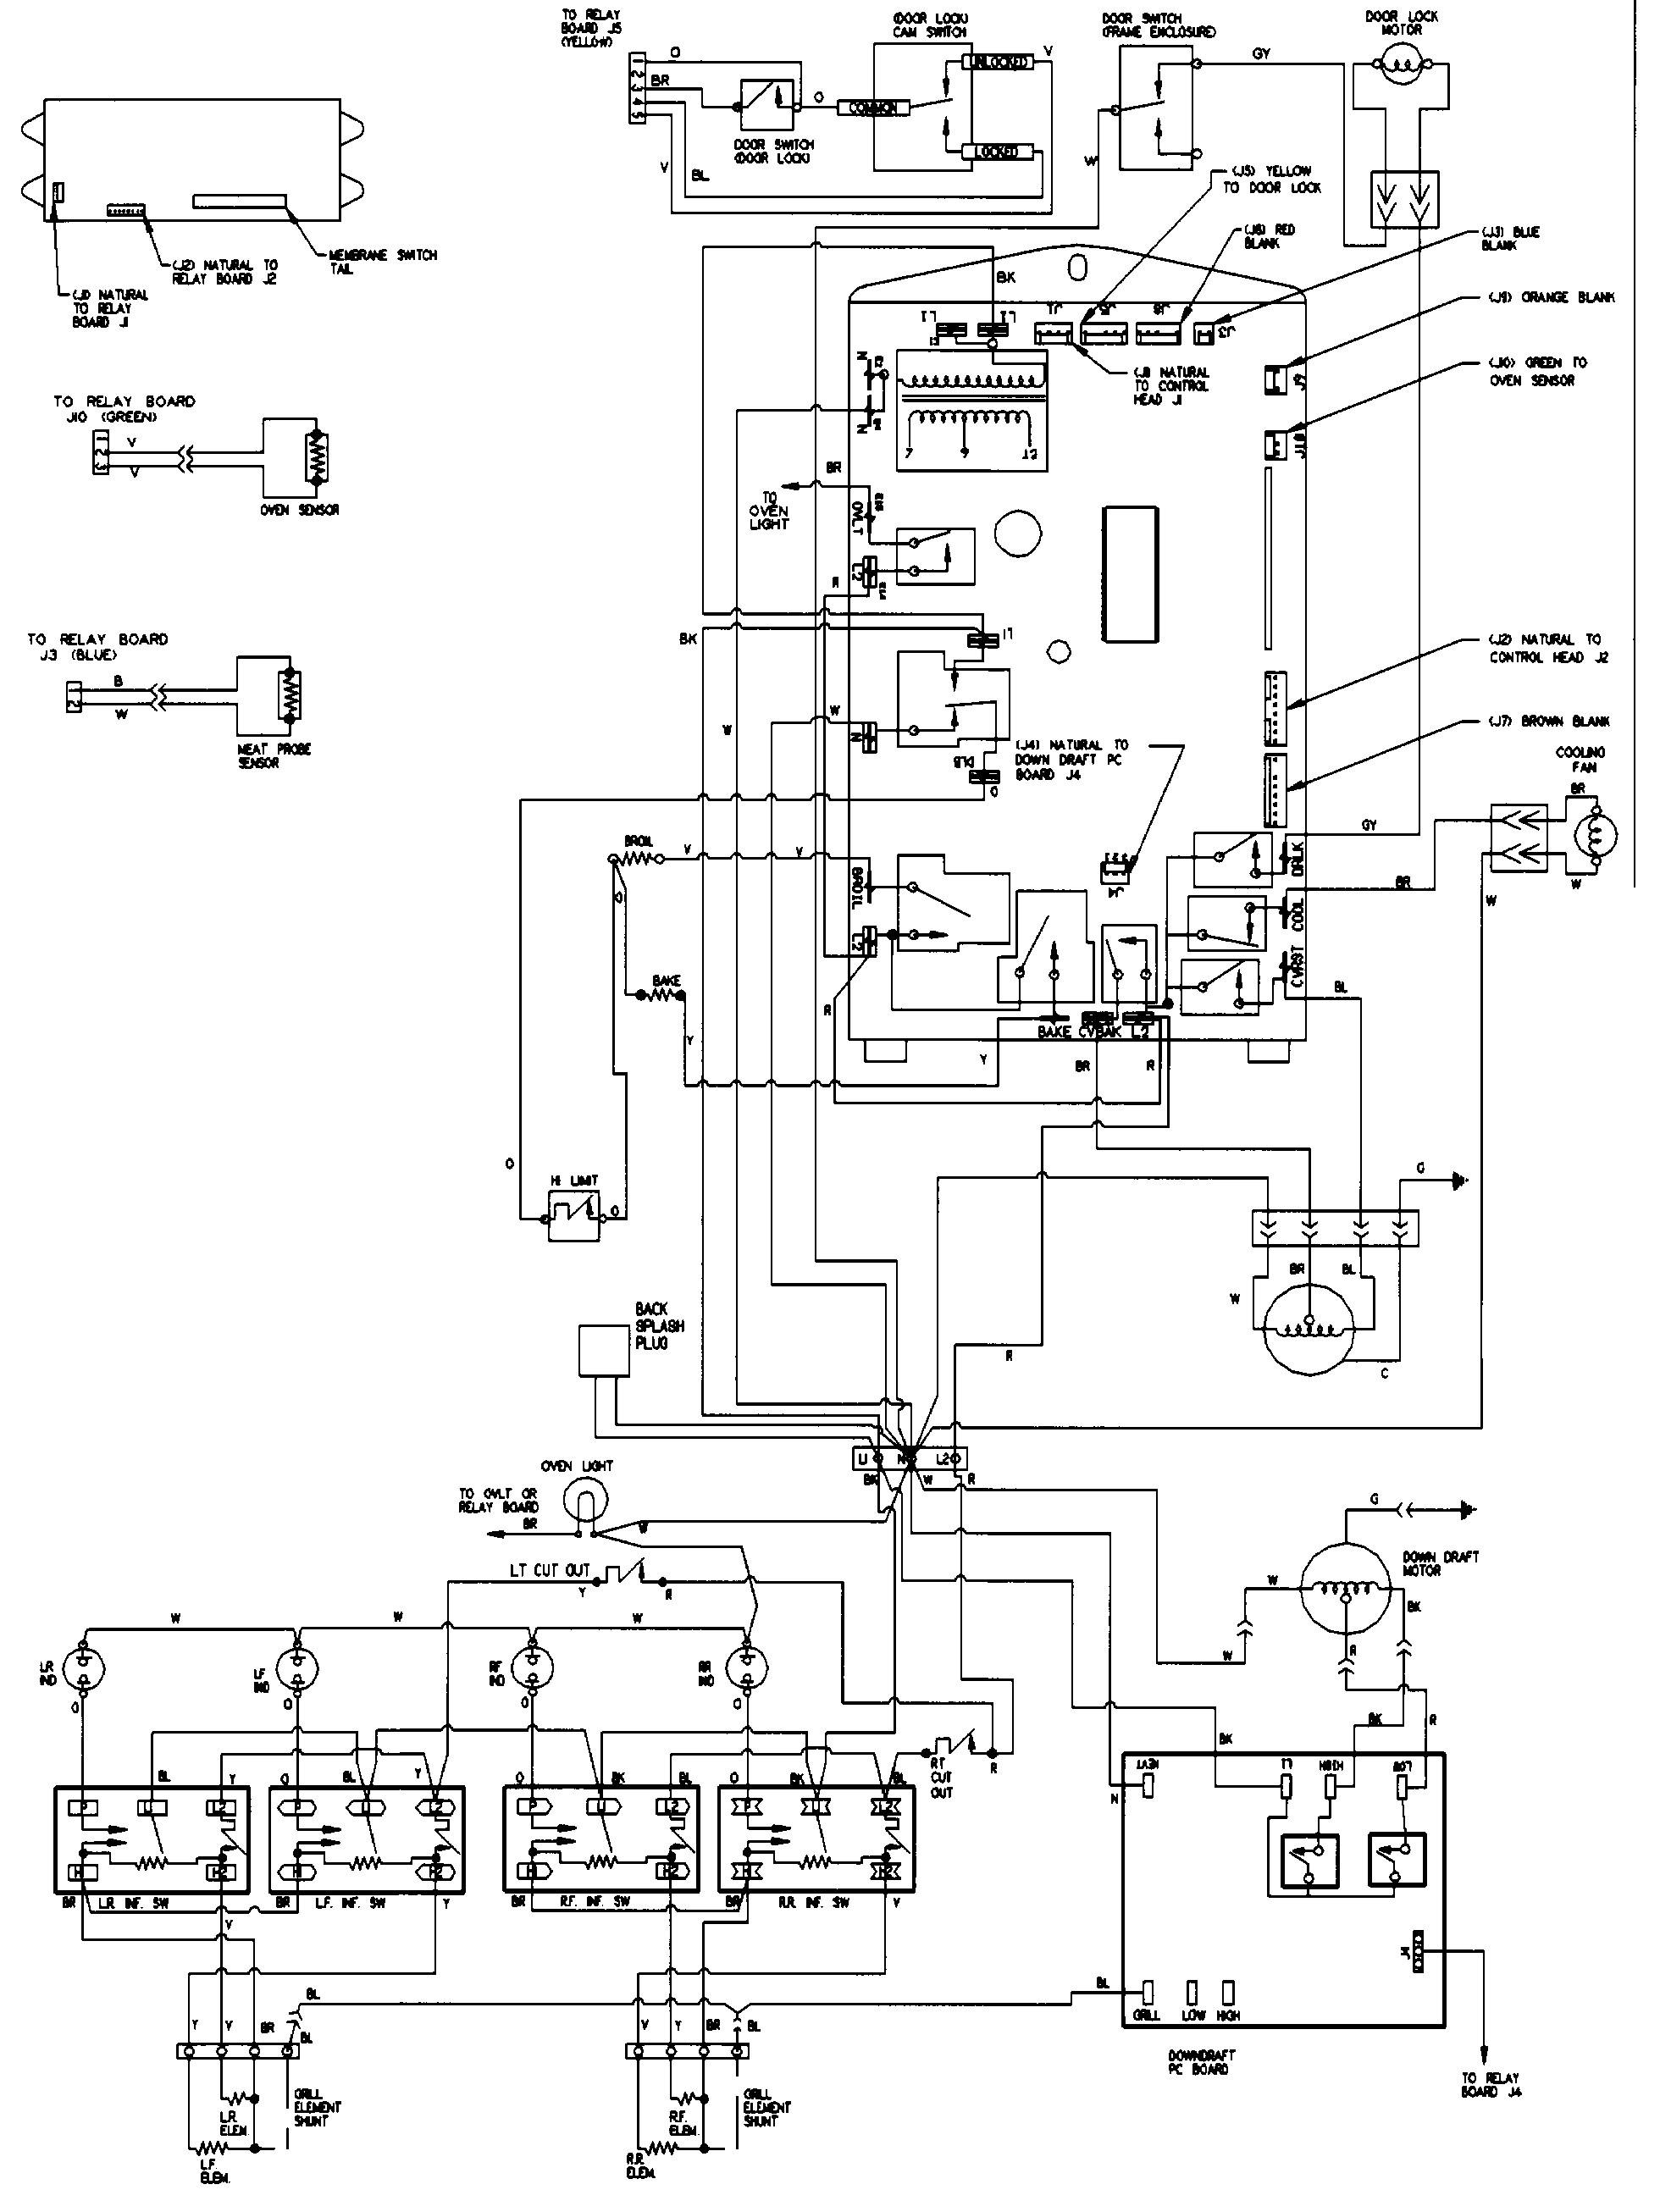 Incredible Electric Circuit Drawing At Getdrawings Com Free For Personal Use Wiring Digital Resources Remcakbiperorg